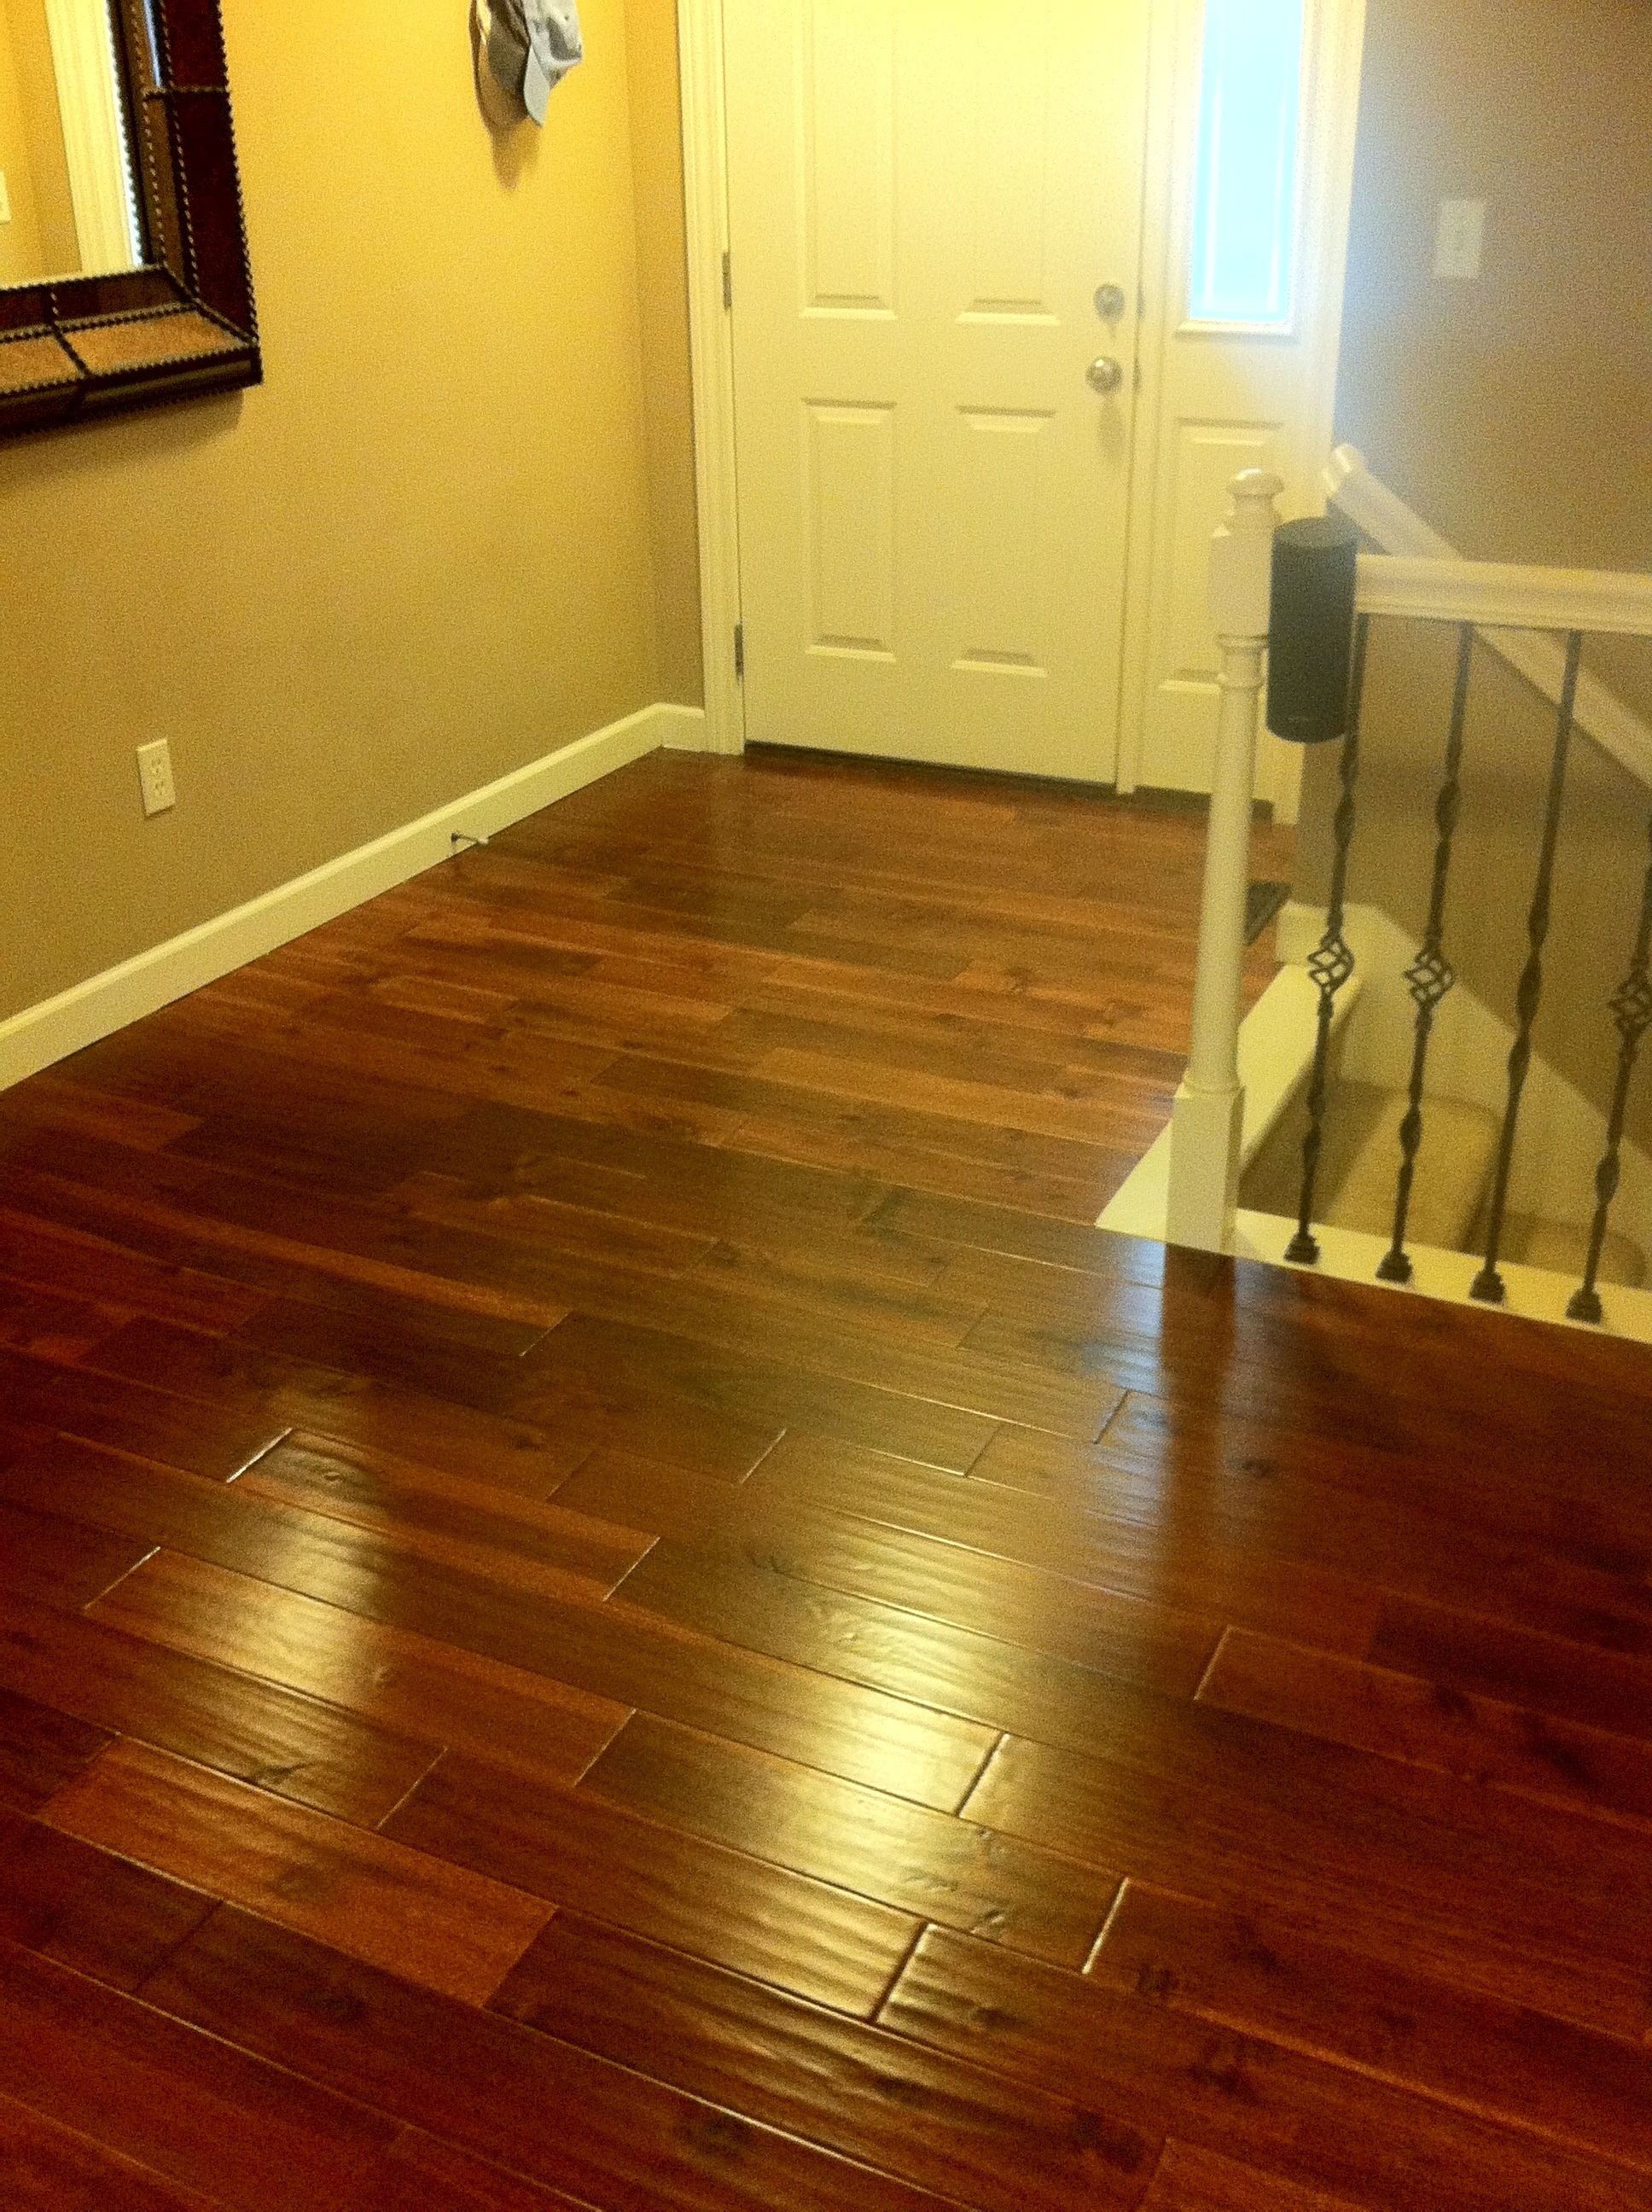 hardwood floor in entry columbia missouri bathroom